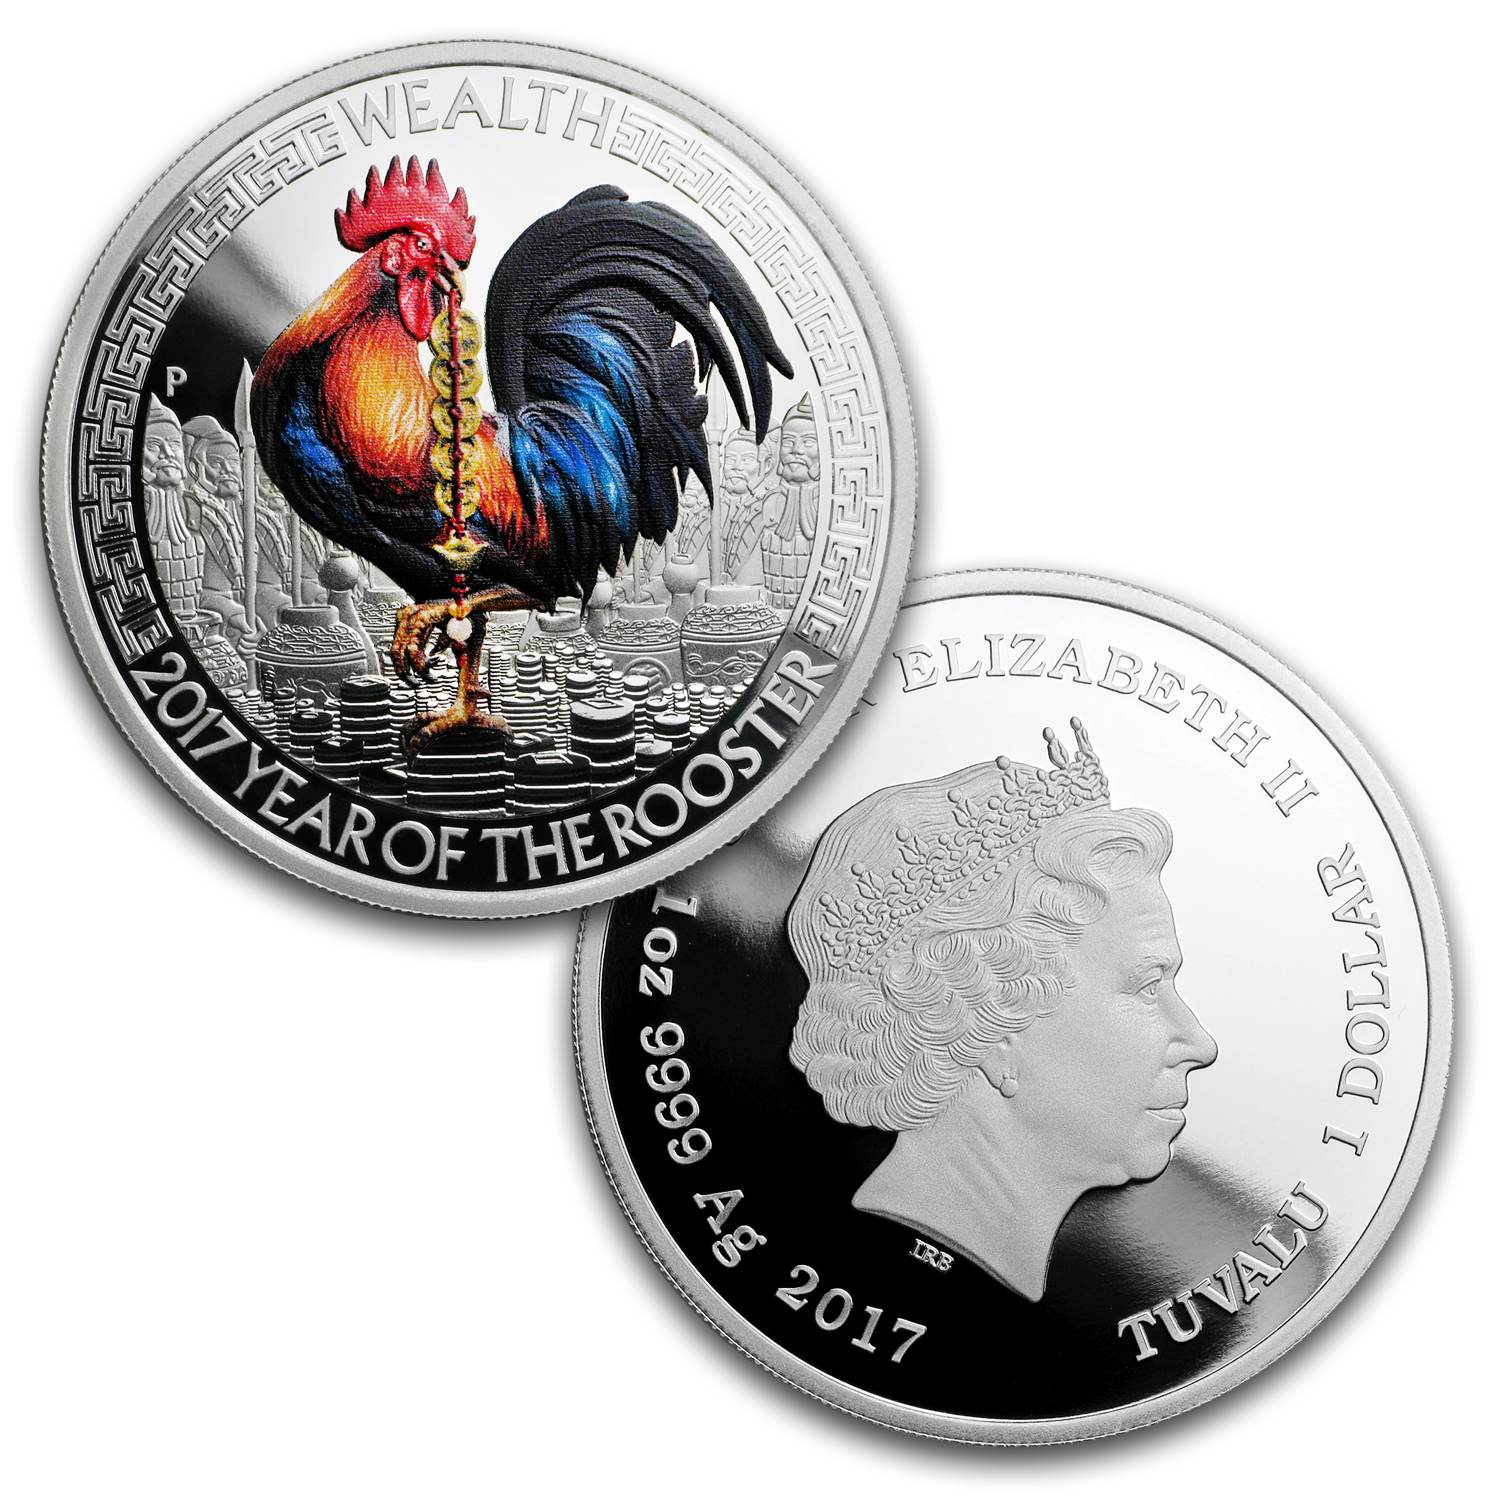 2017 Australia 2-Coin Silver Wealth & Wisdom Proof Rooster Set